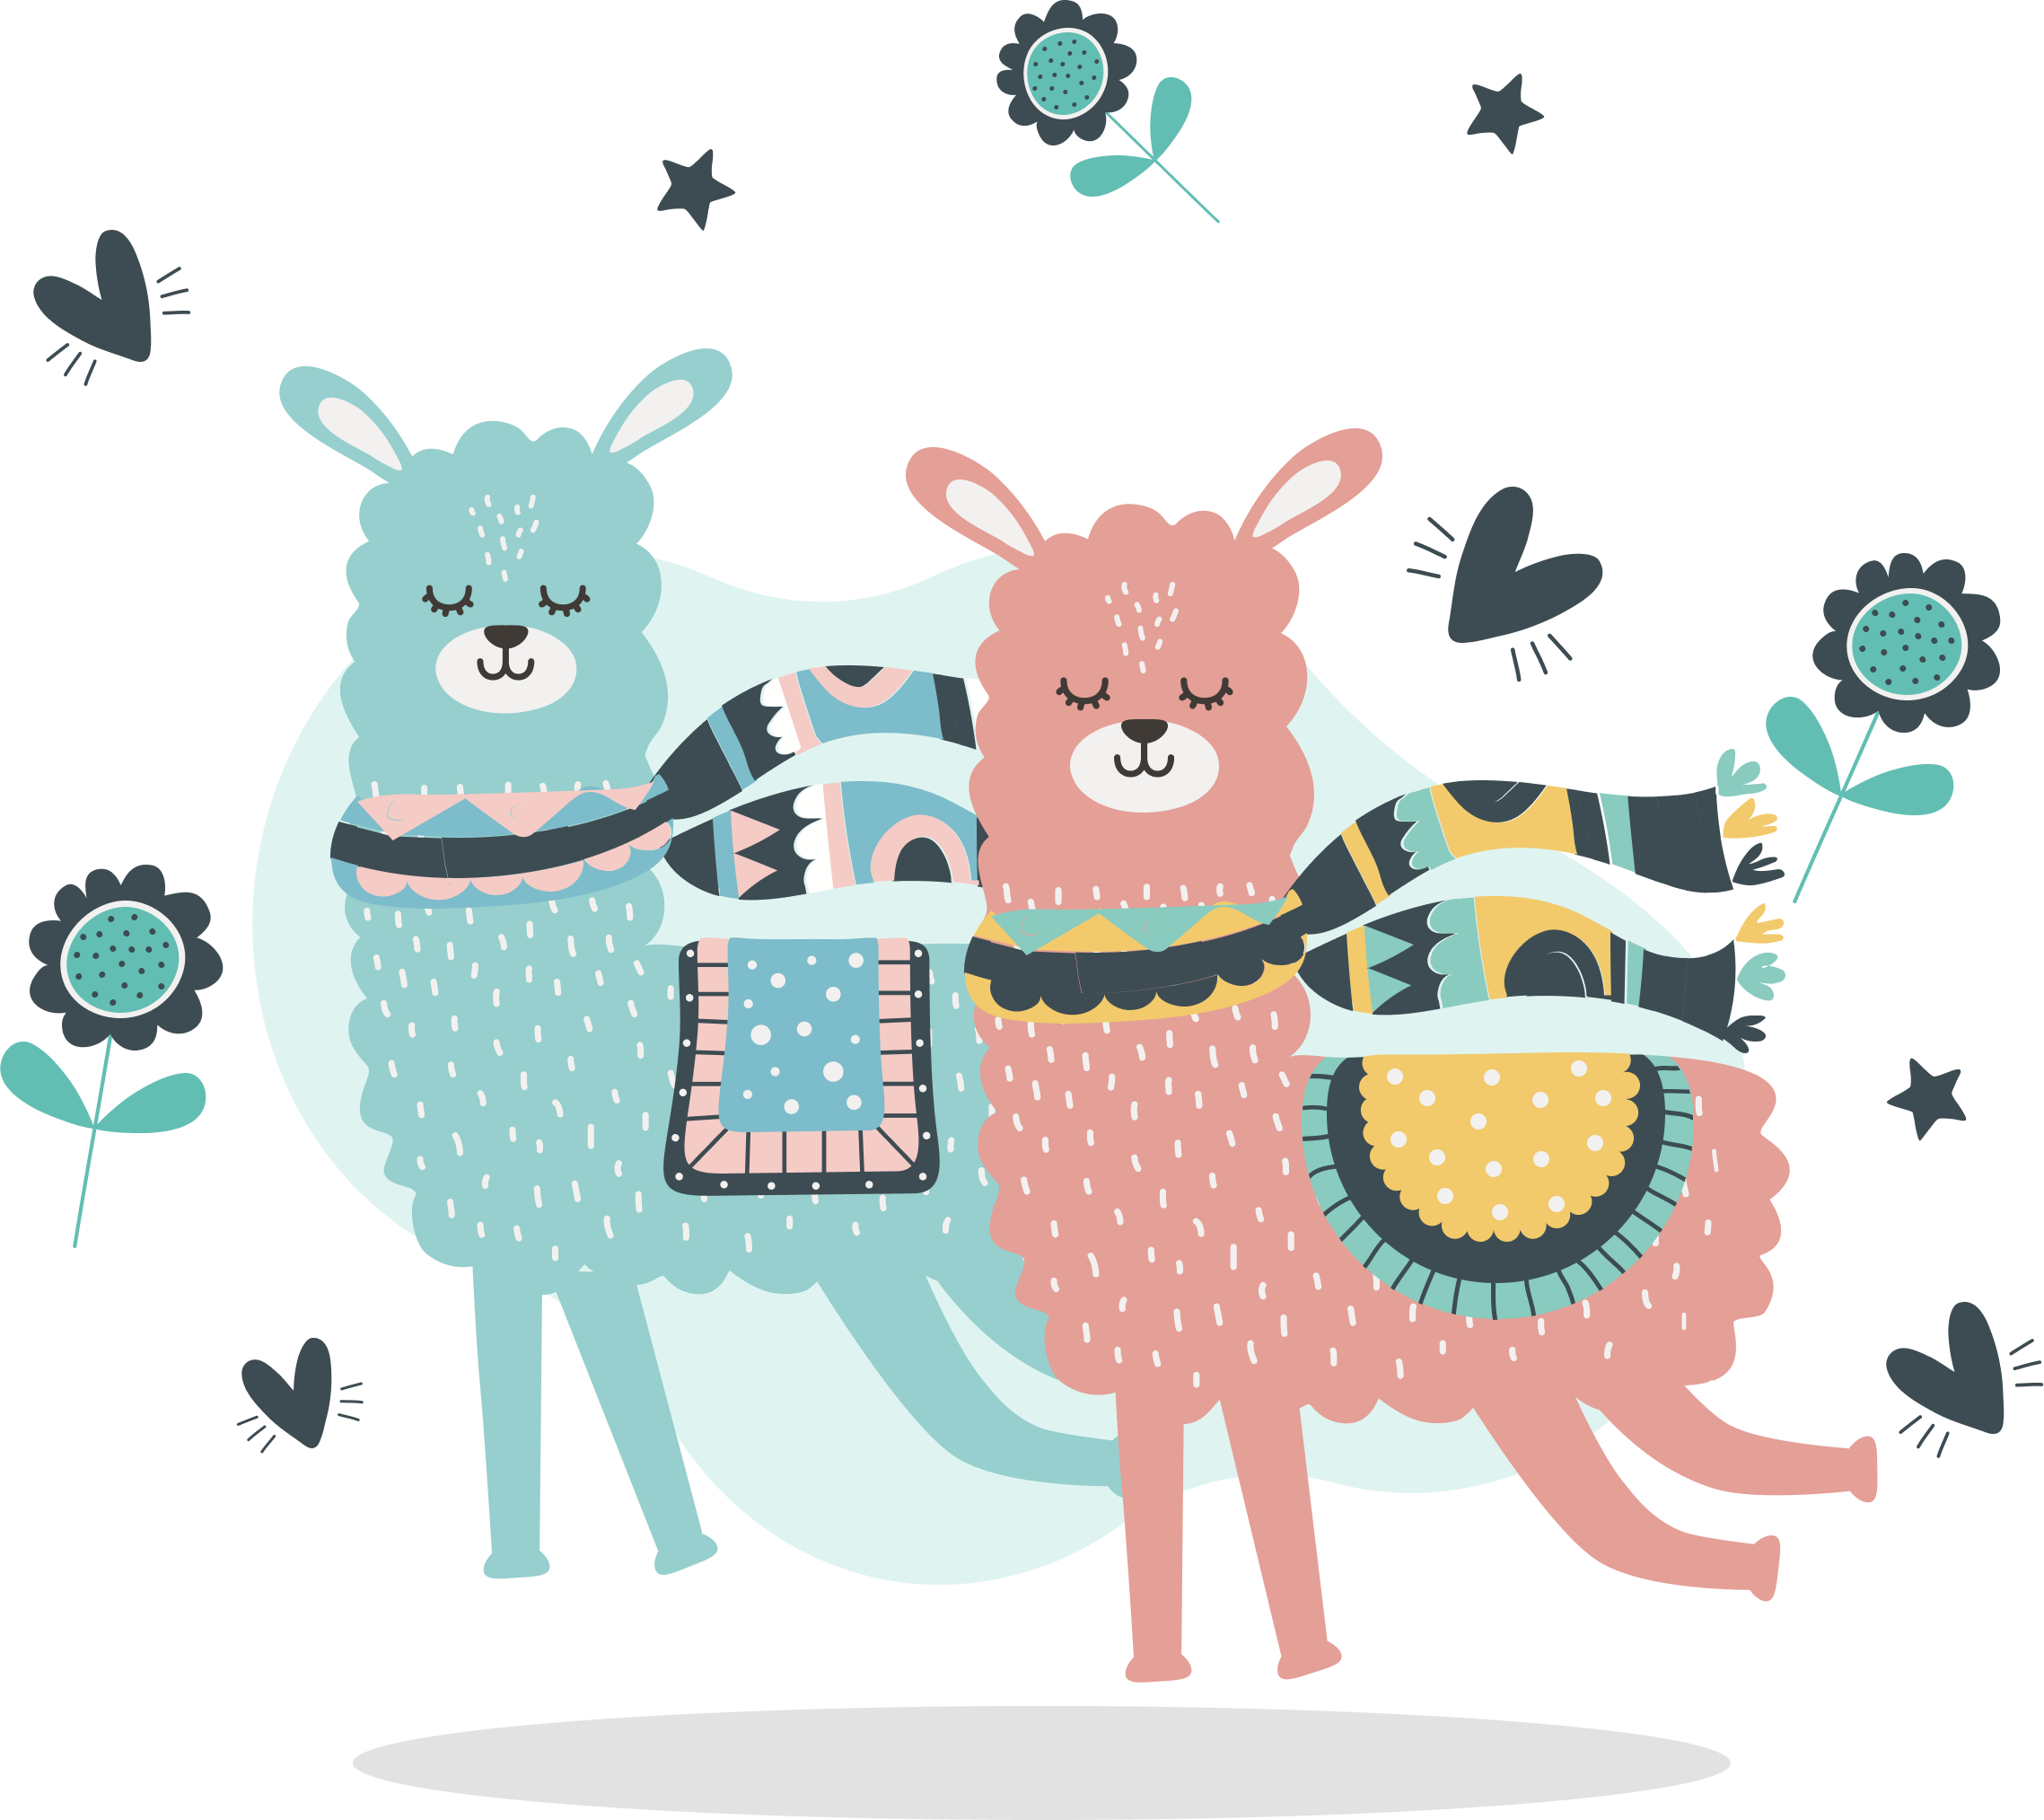 Two llamas with scarves on hopping around